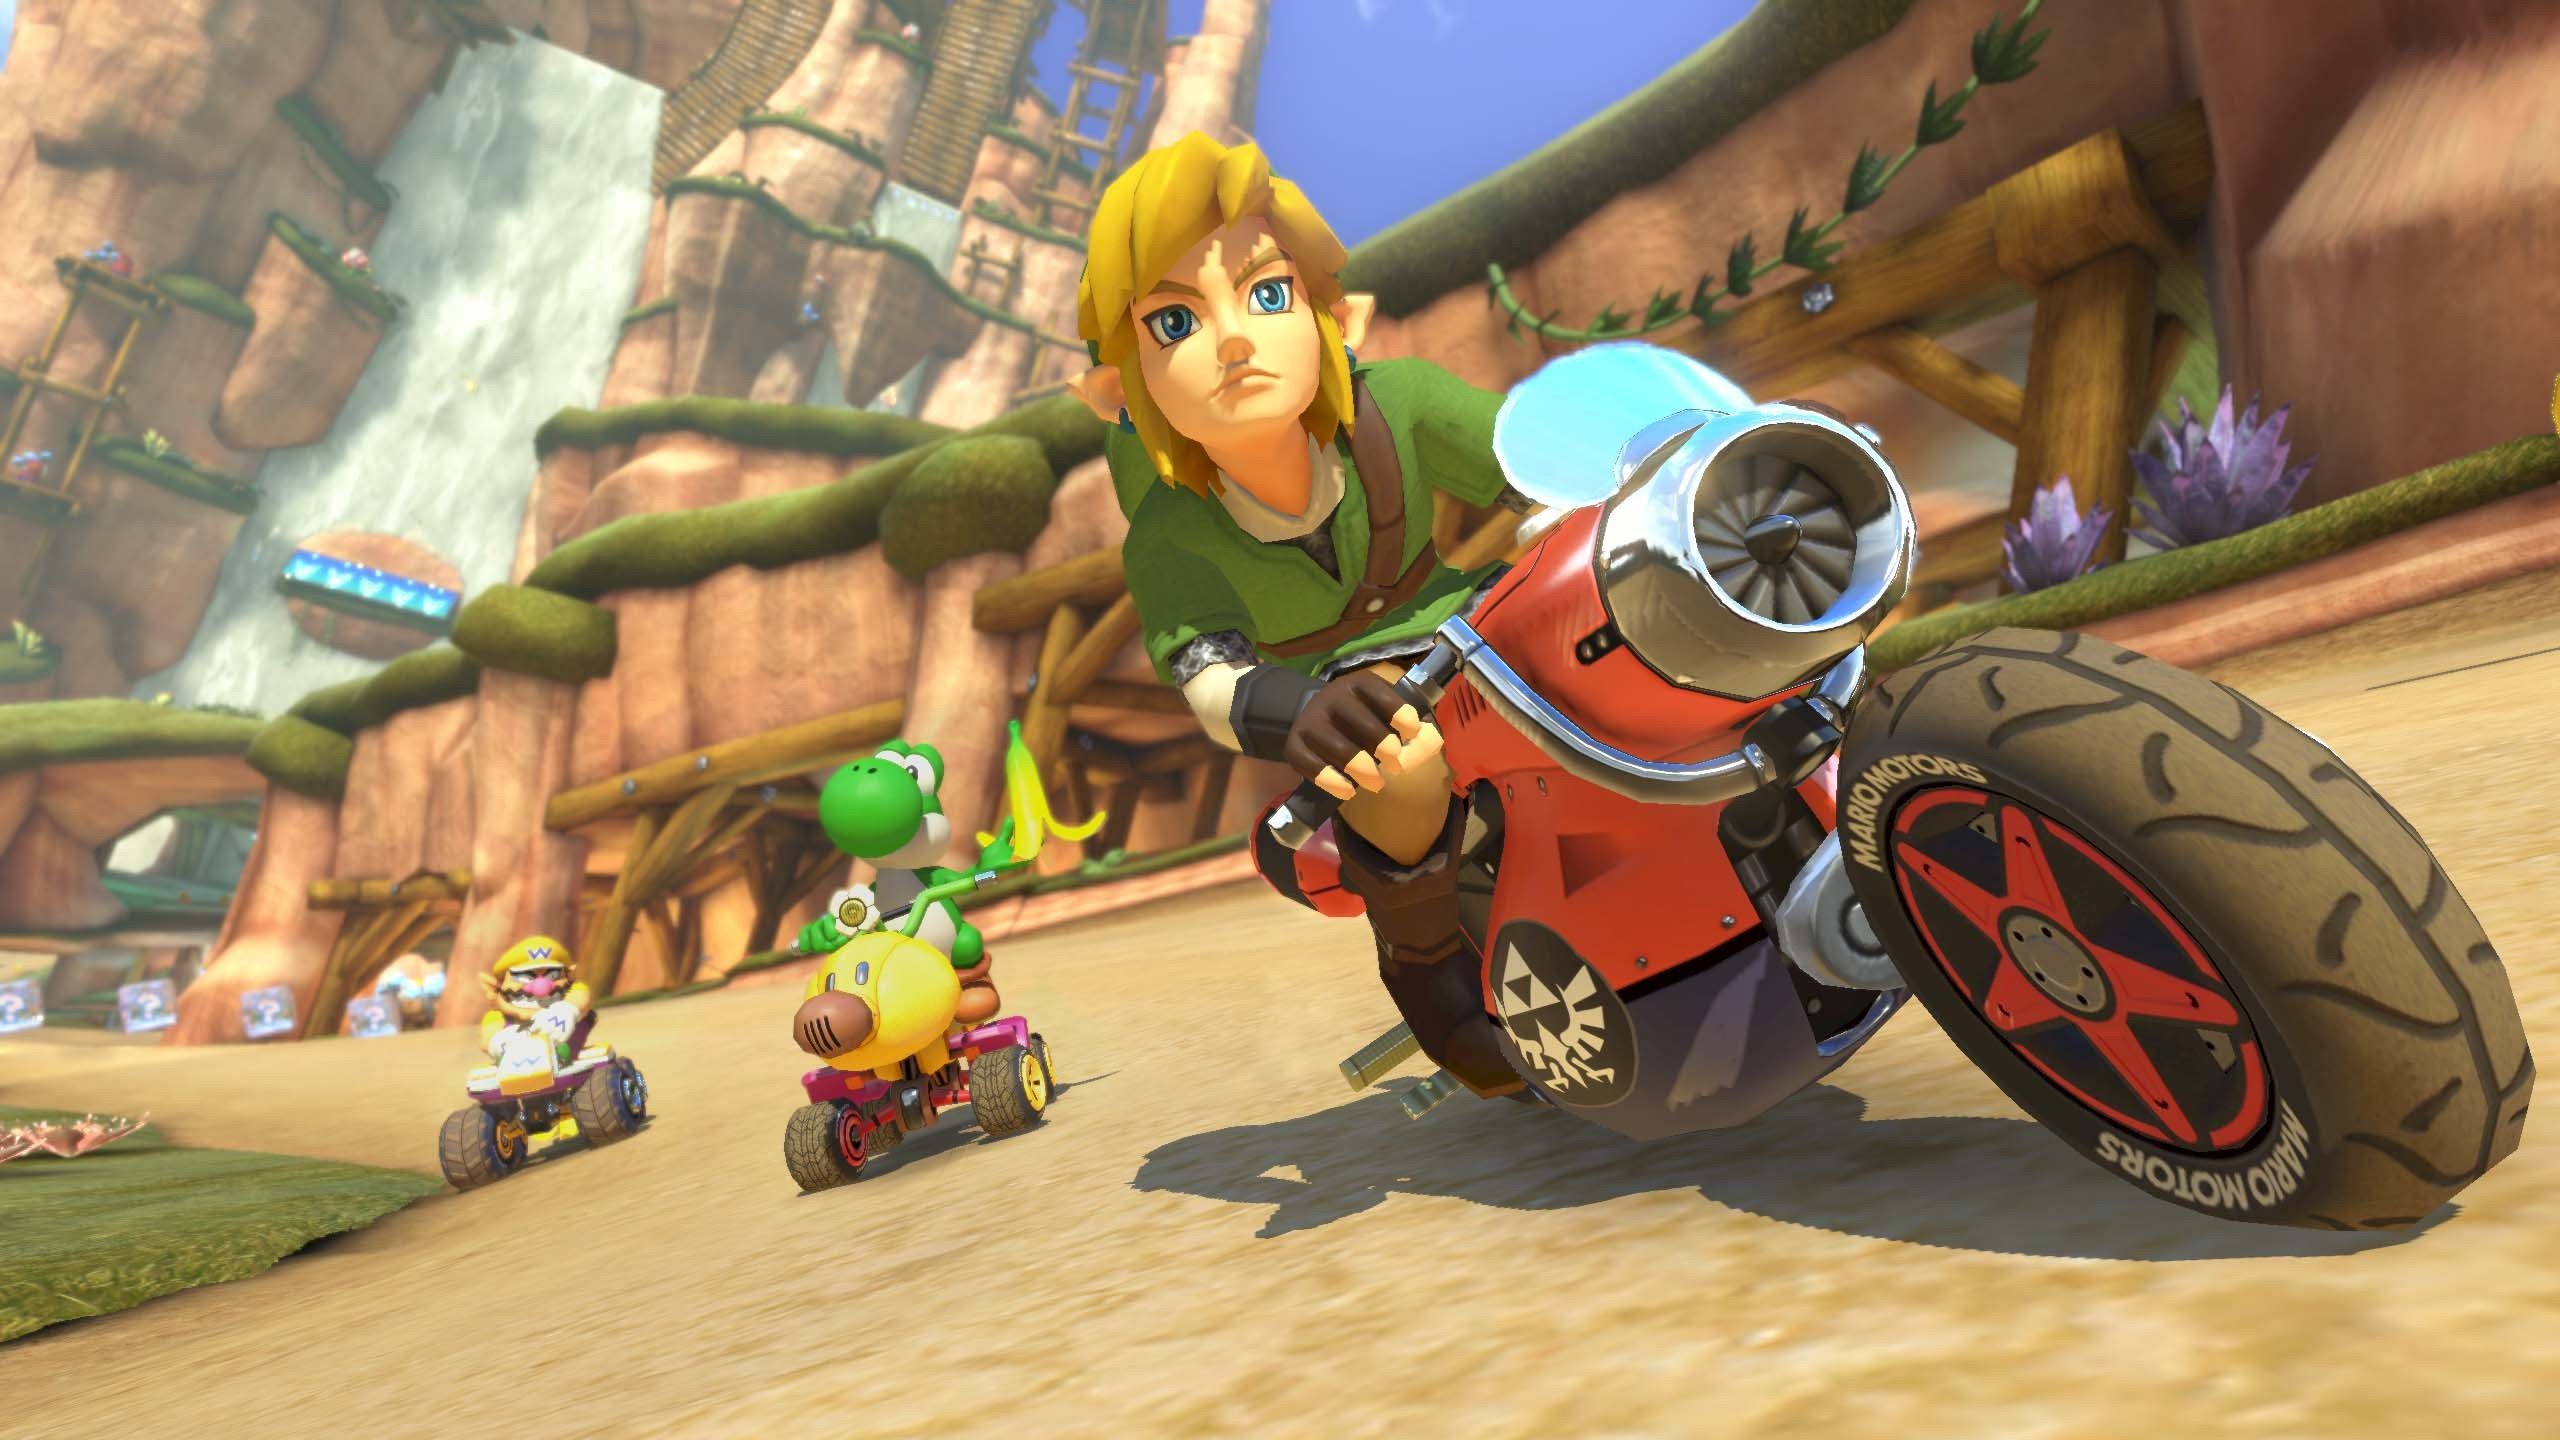 Massive Mario Kart 8 DLC Packs Add 16 New Courses, Plus New